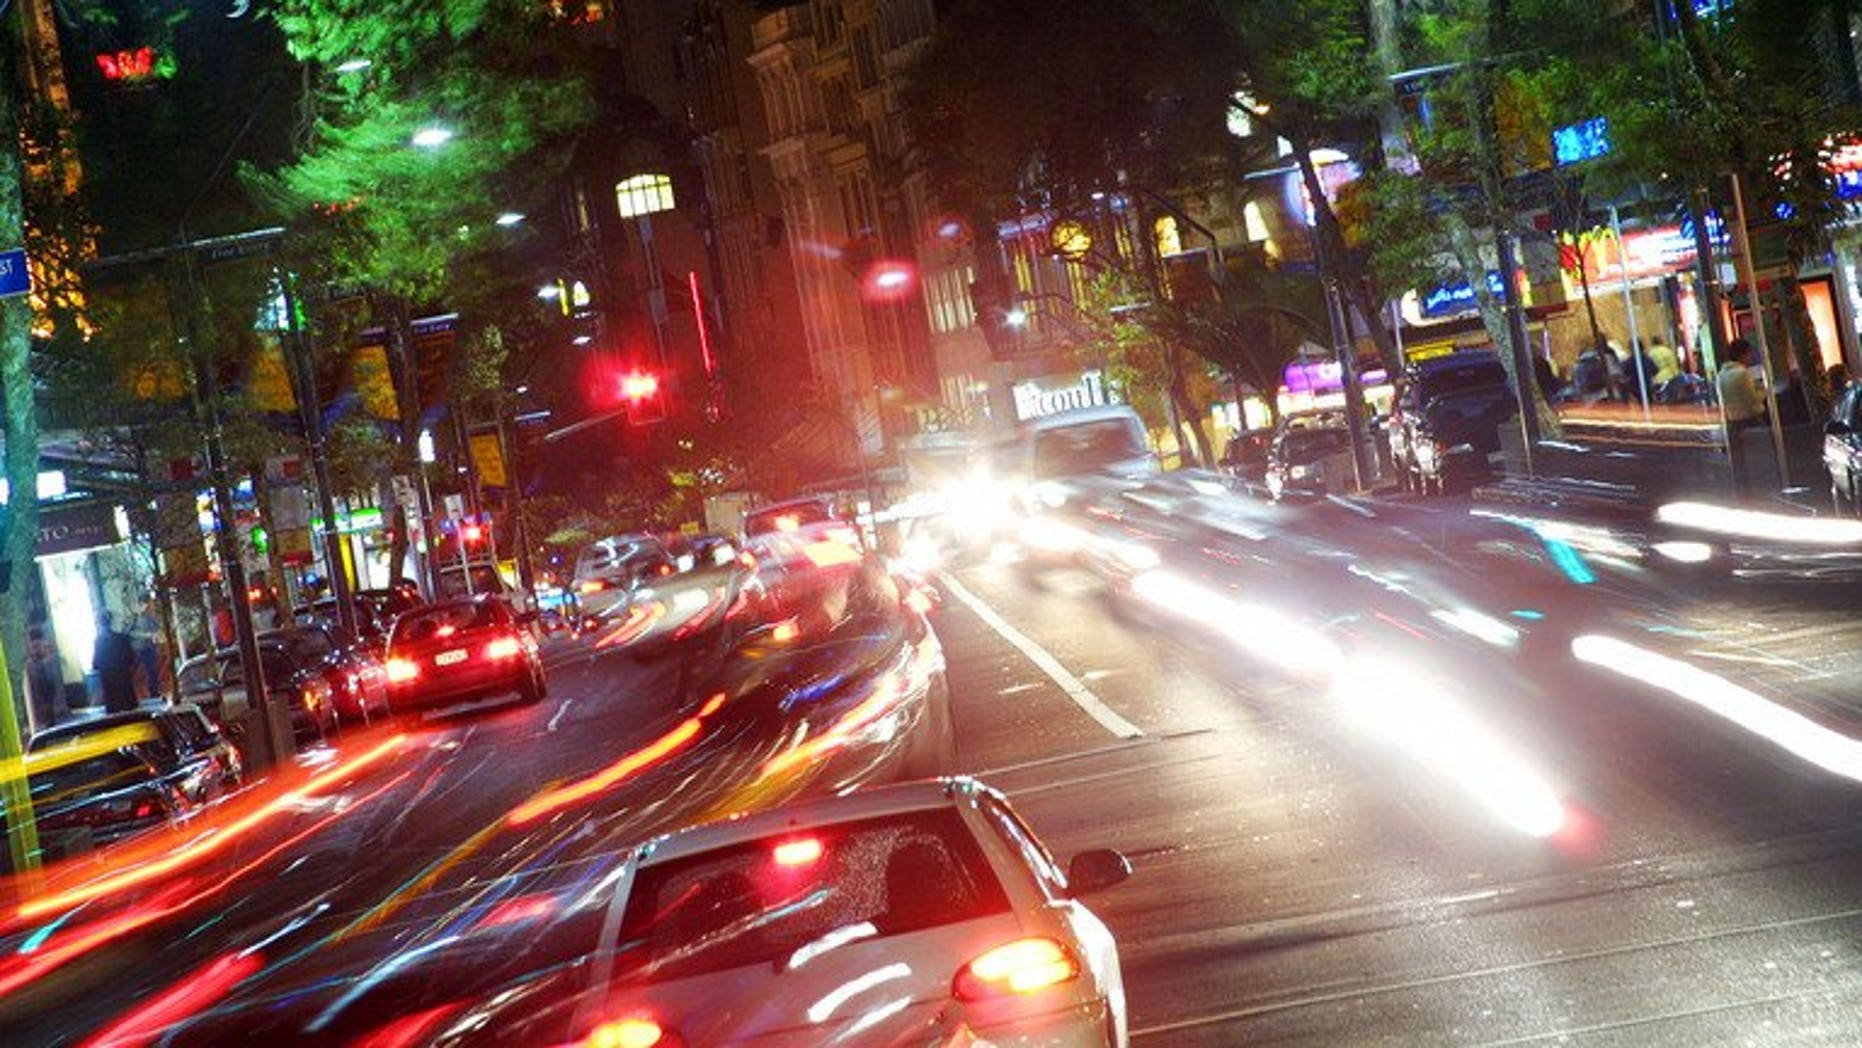 Cars and people make their way up and down Auckland's Queen Street on July 1, 2003. A New Zealand woman drove for hundreds of kilometres (miles) while asleep at the wheel, sending texts from her mobile phone along the way, police said Wednesday.